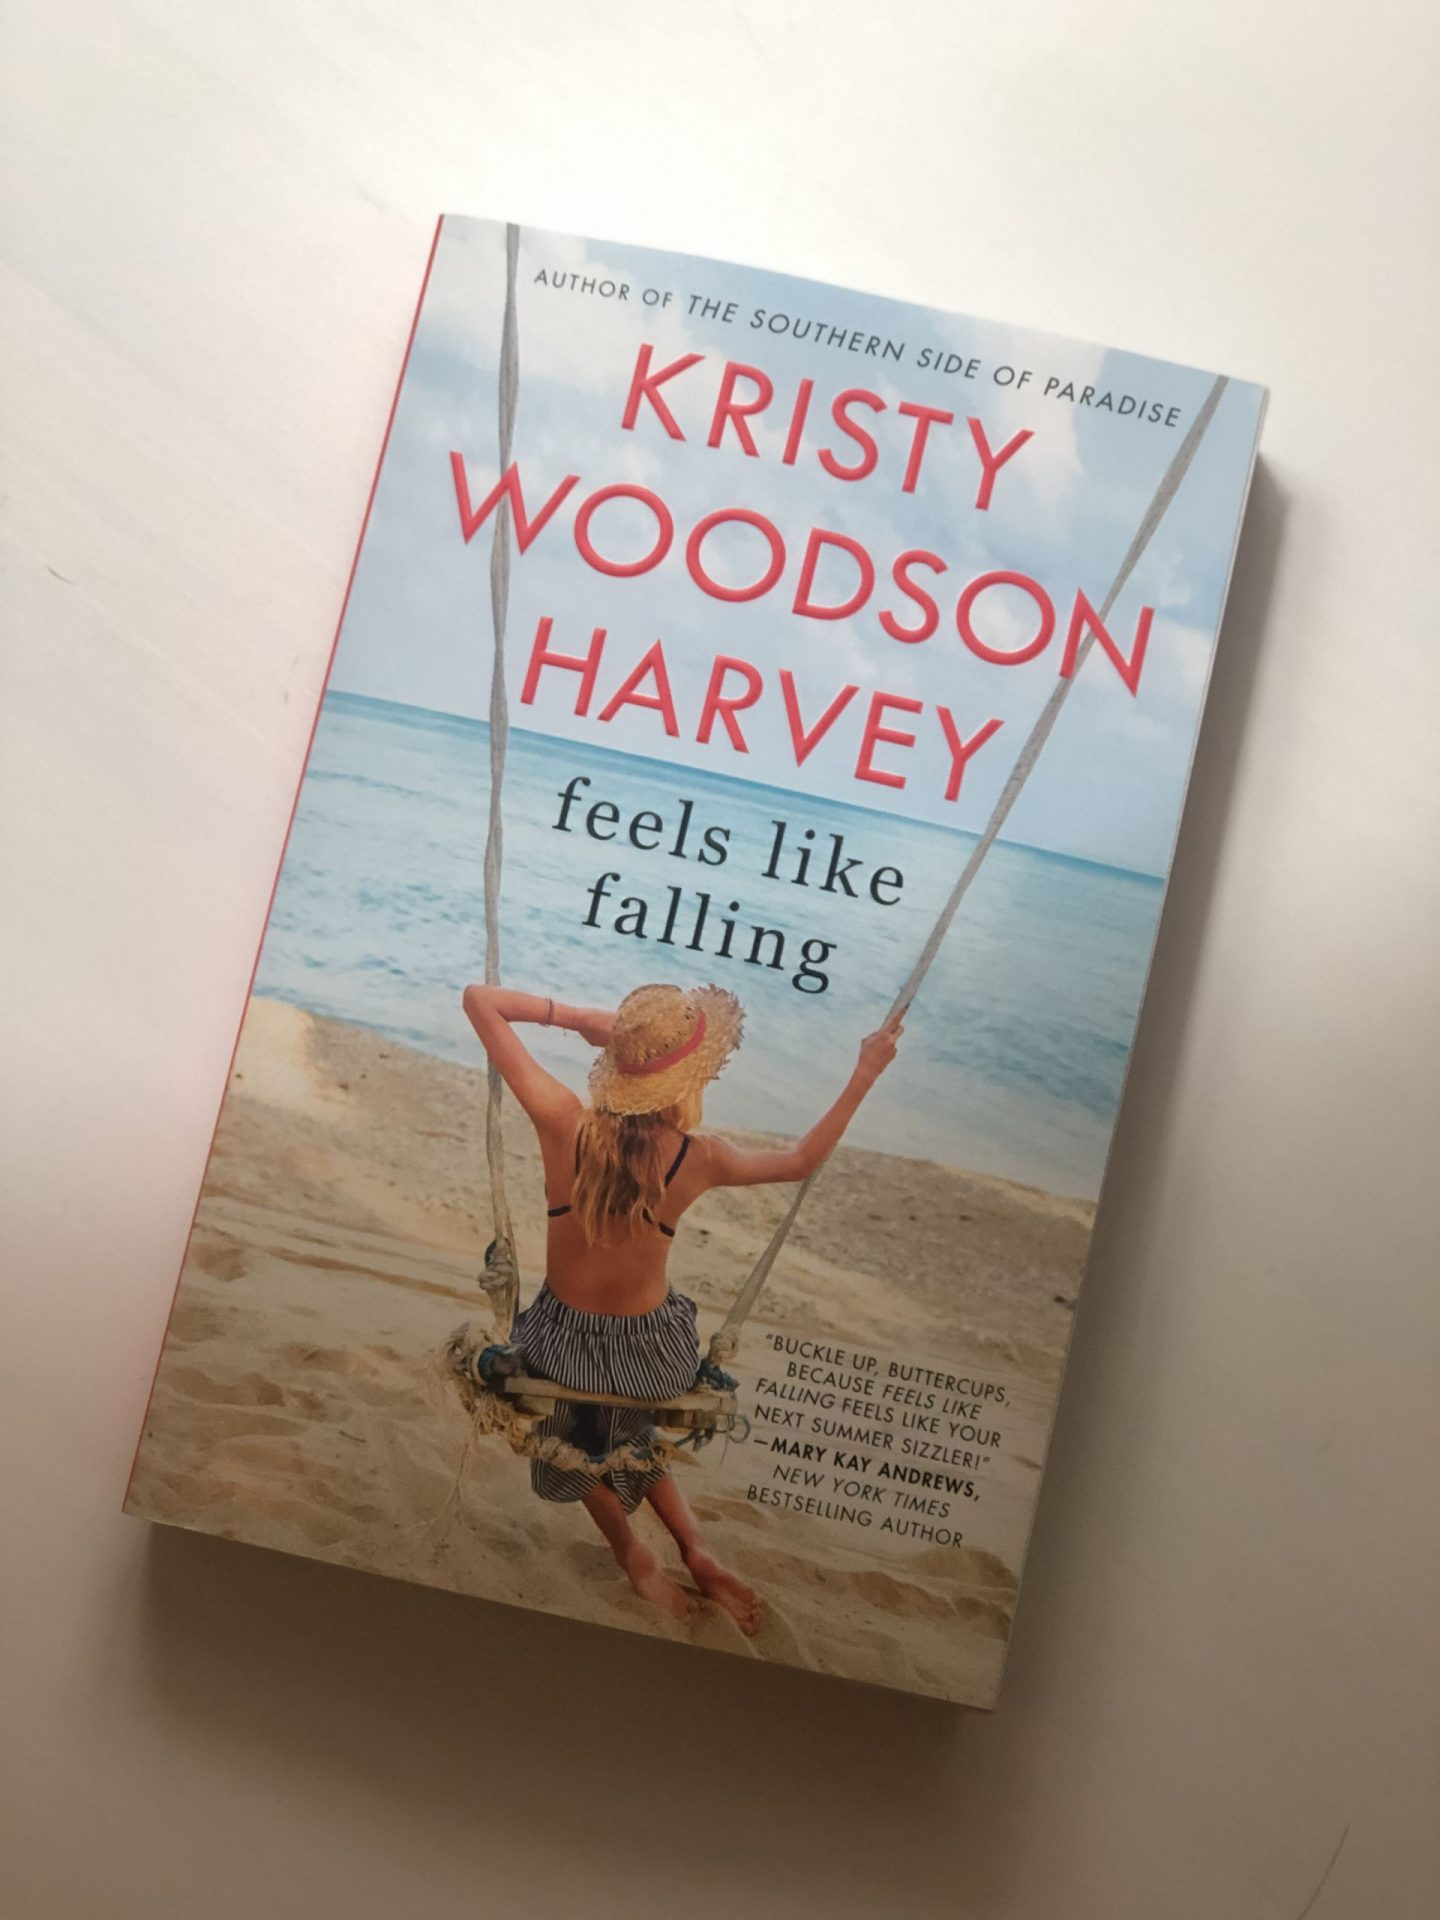 NC blogger Rebecca Lately shares her revivew of Feels Like Falling by Kristy Woodson Harvey. This is the perfect warm-weather read!